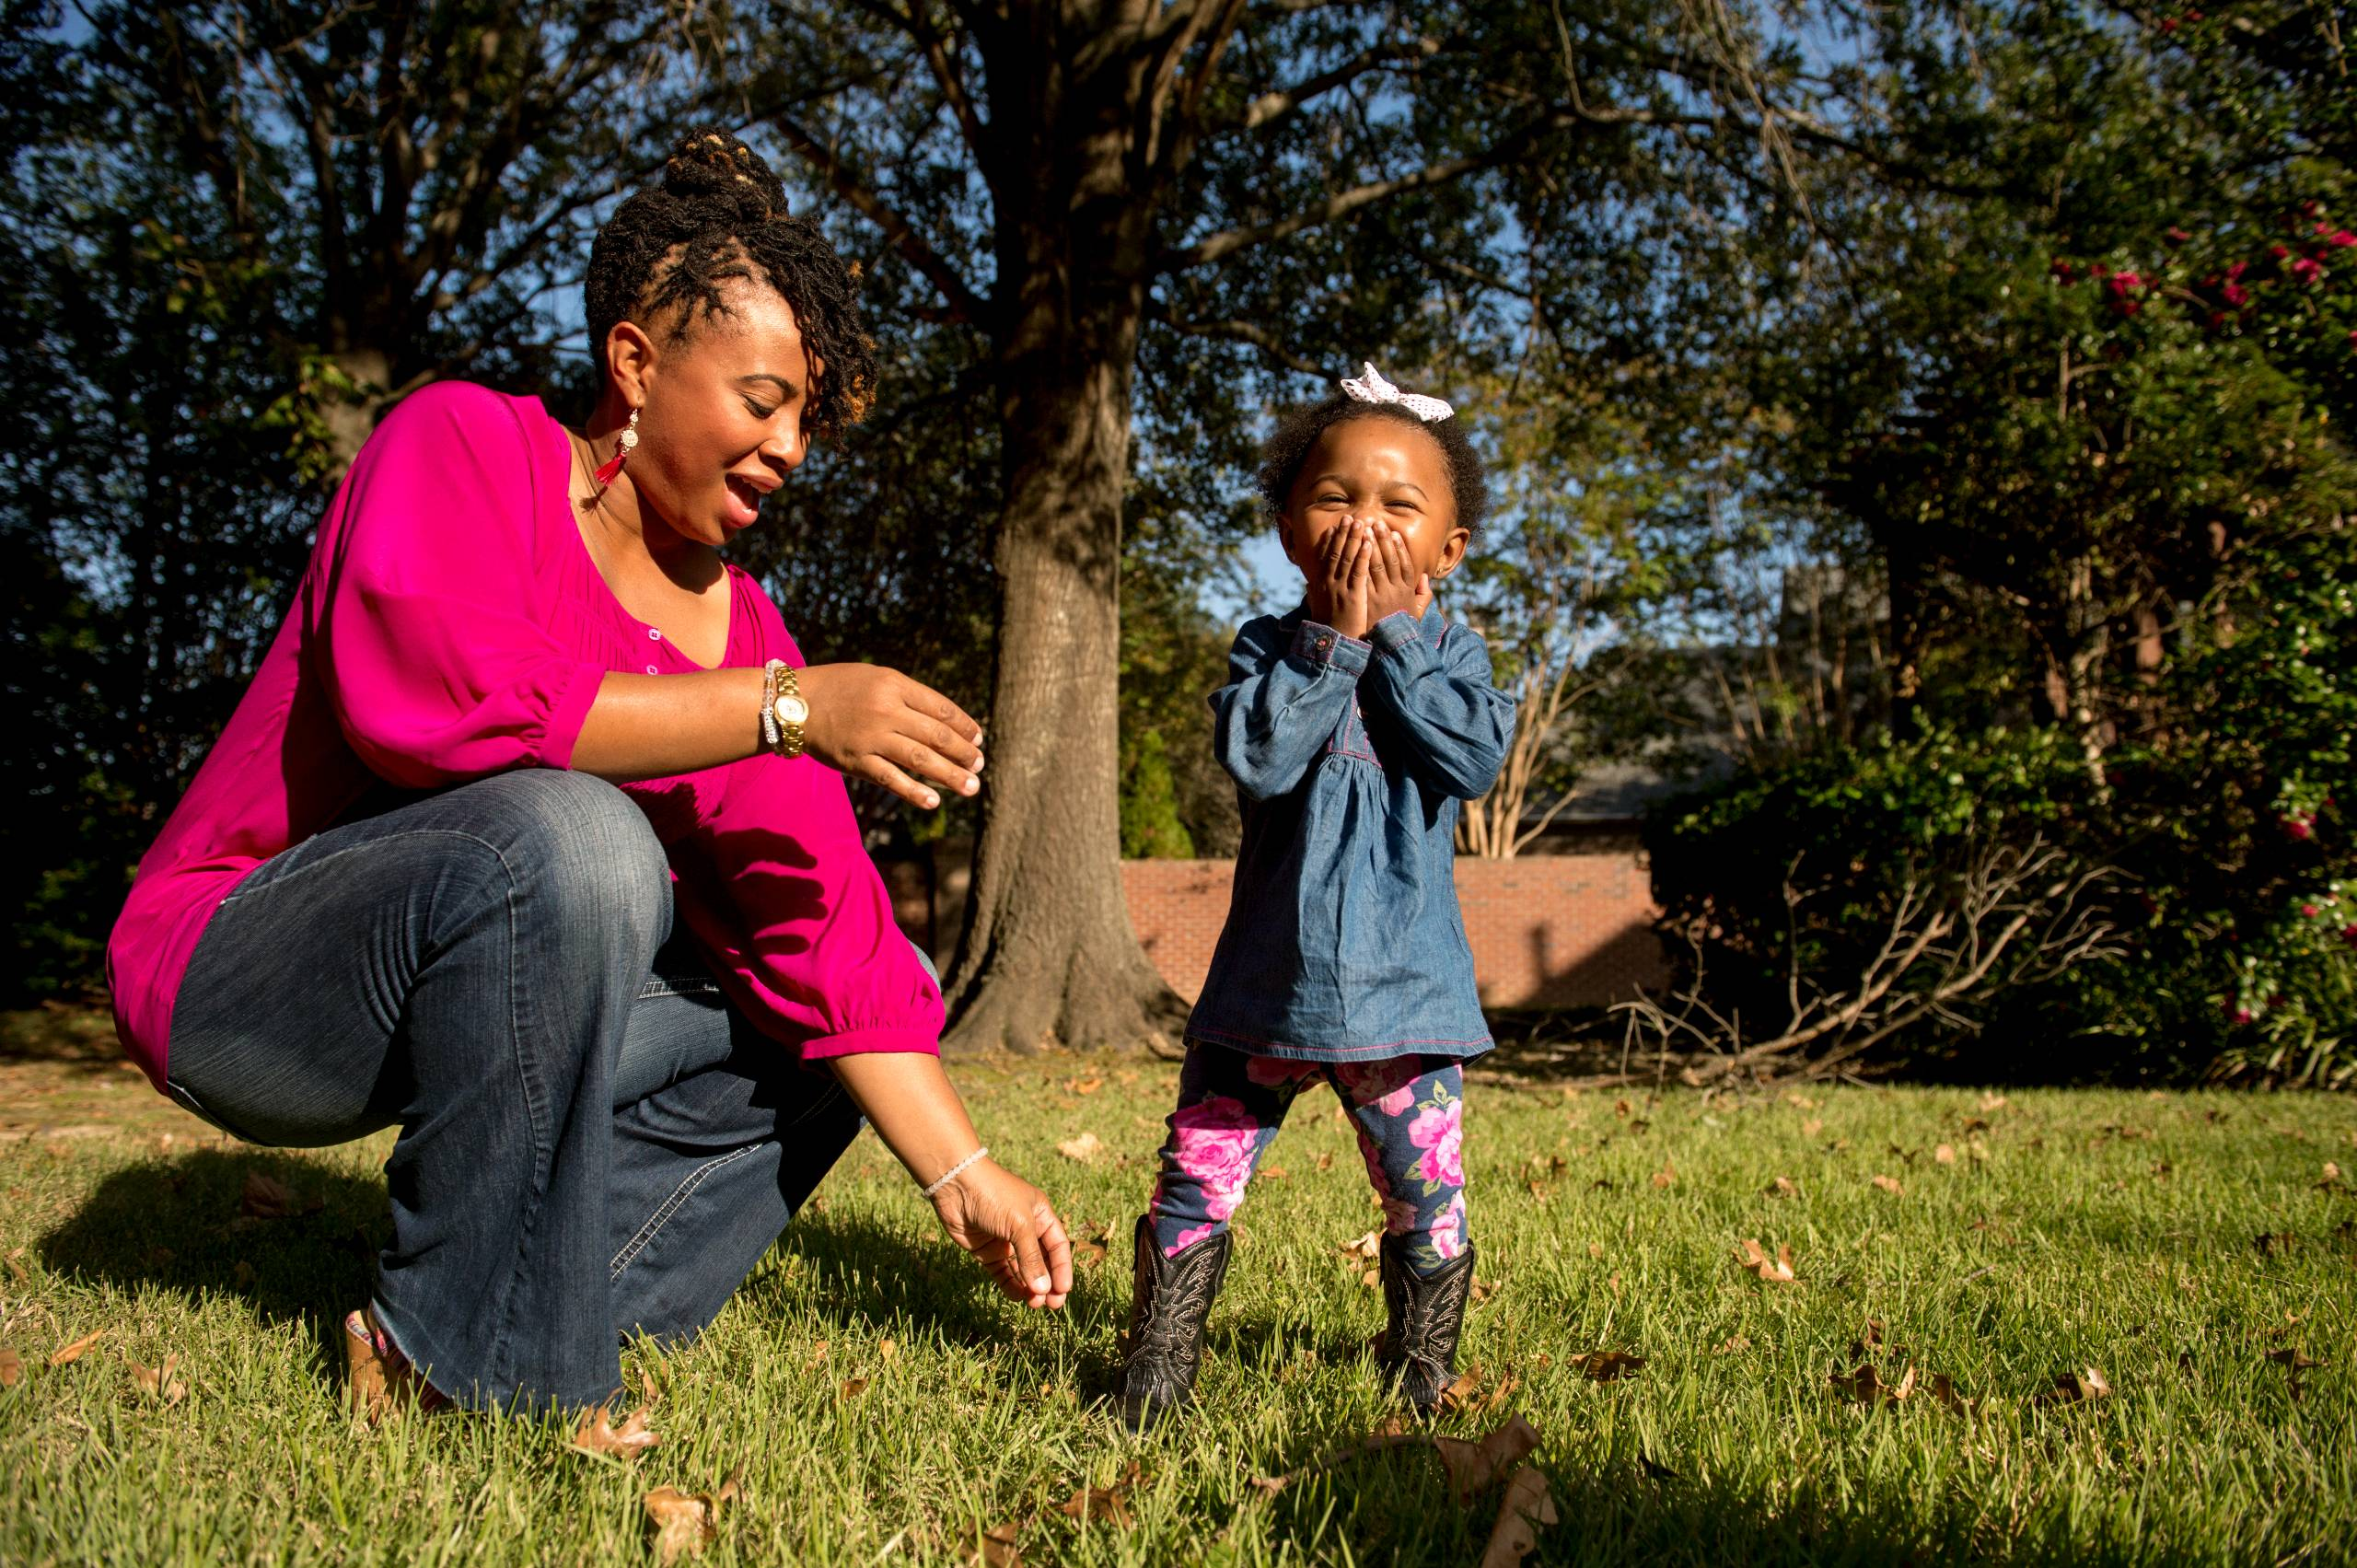 Whitehaven resident Kimberly Dobbins with her daughter Zaiyah Veasley